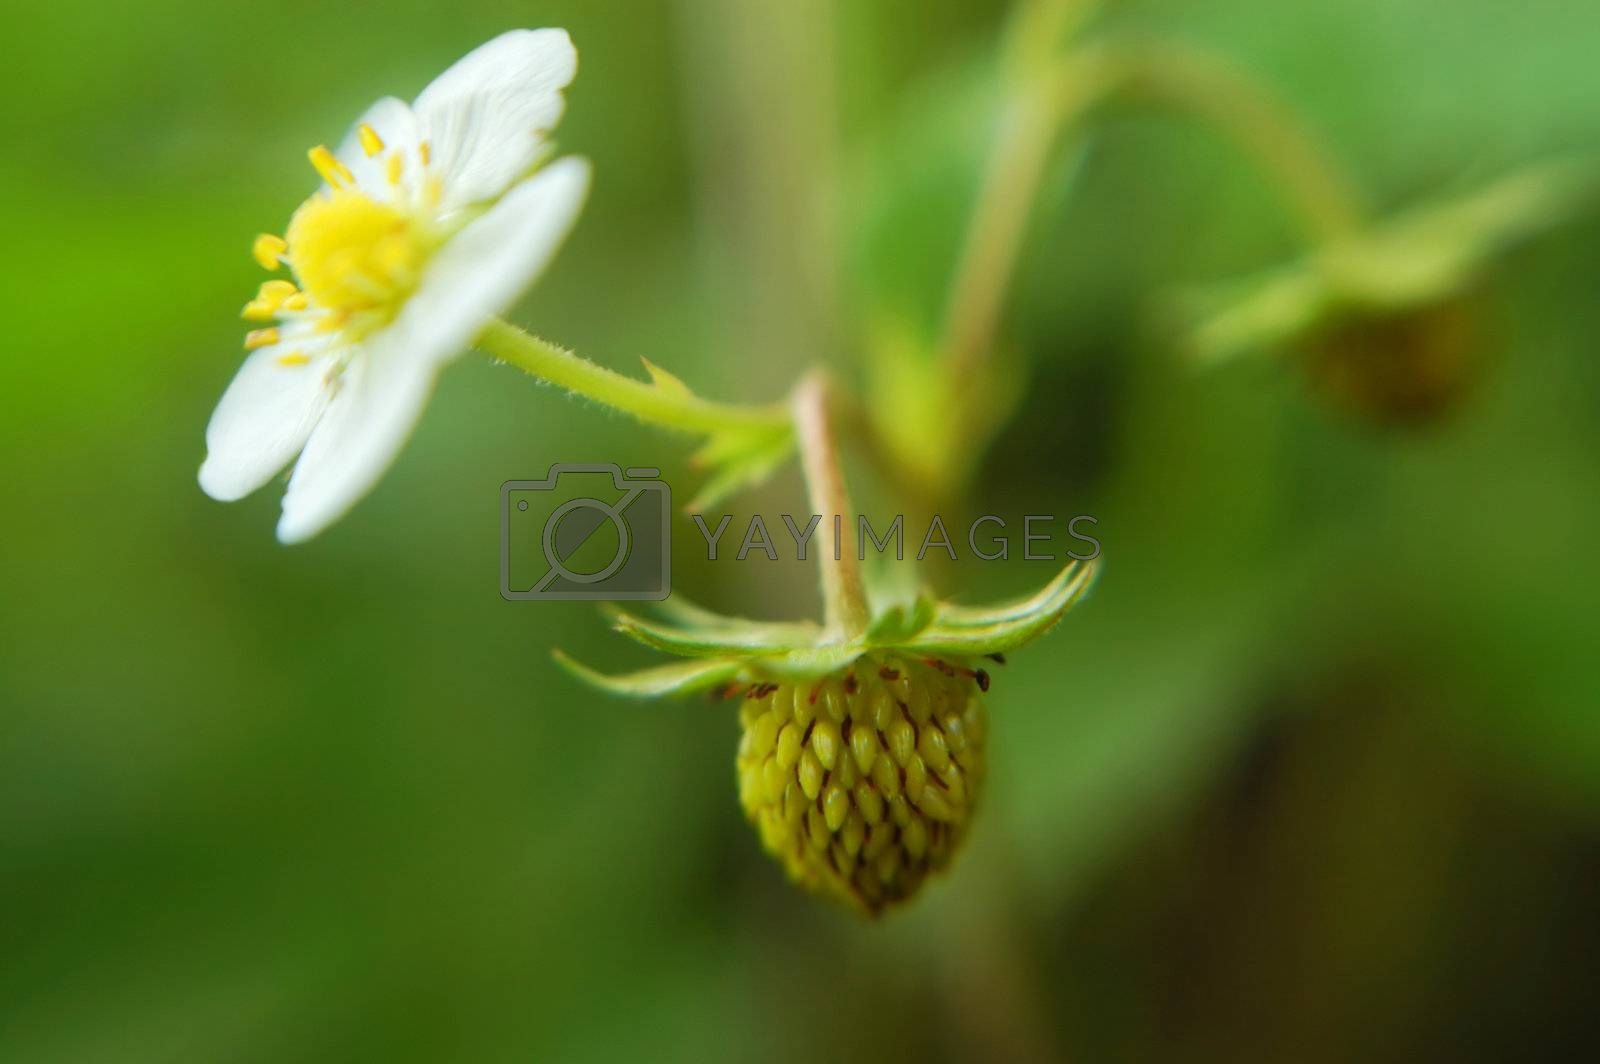 An unripe strawberry hangs delicately in the forefront of this image, while a blossom is seen to the side. Extreme shallow depth of focus gives this image a unique and wonderful feel.